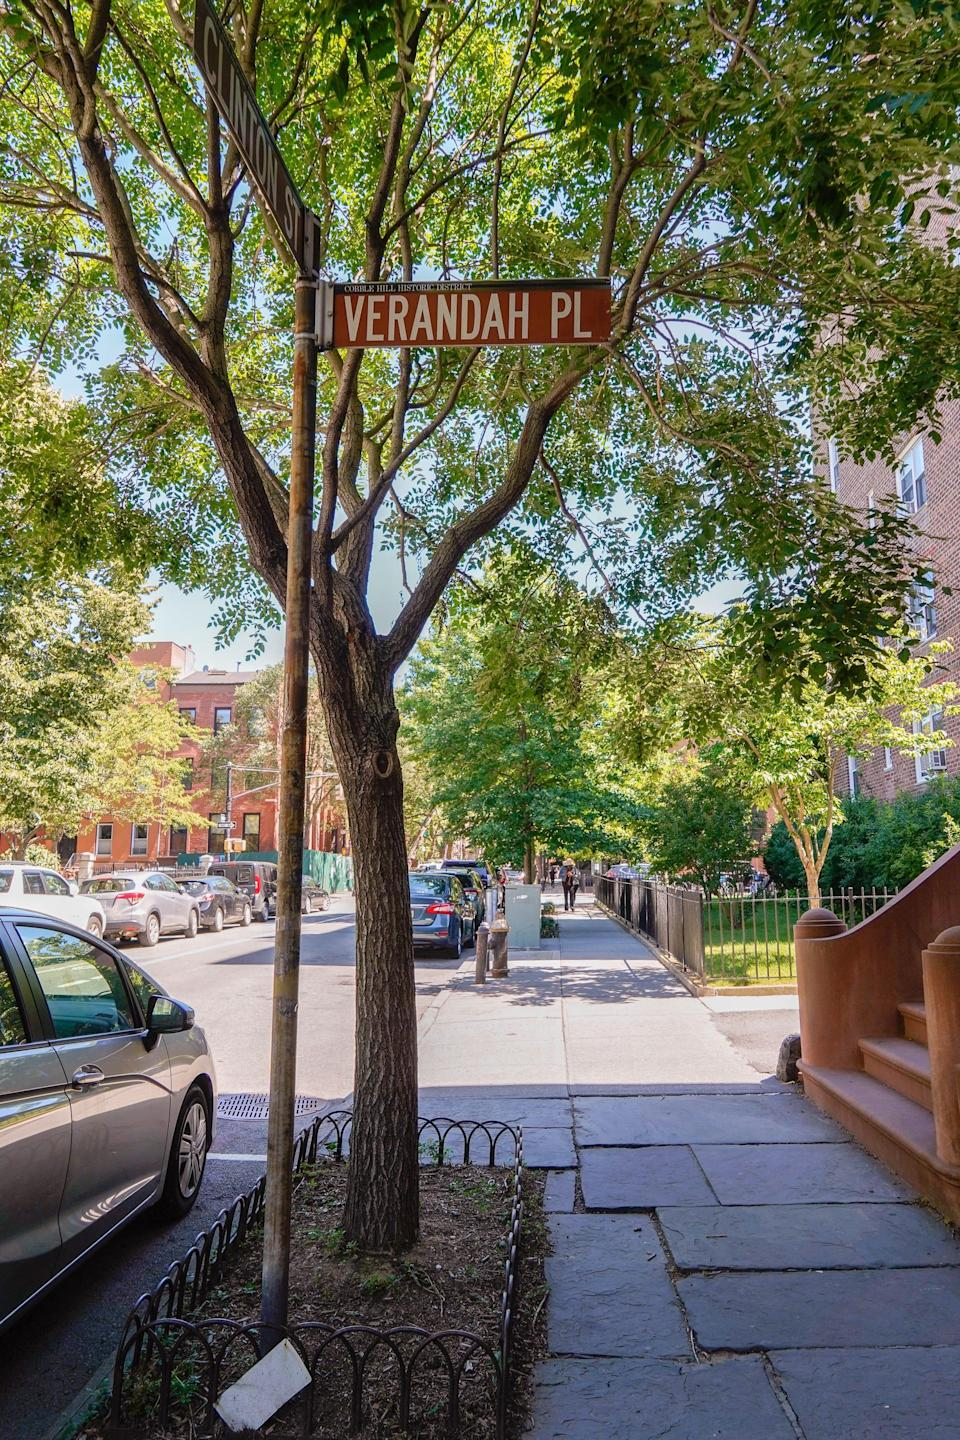 Verandah place sign in front of a tree on a sidewalk